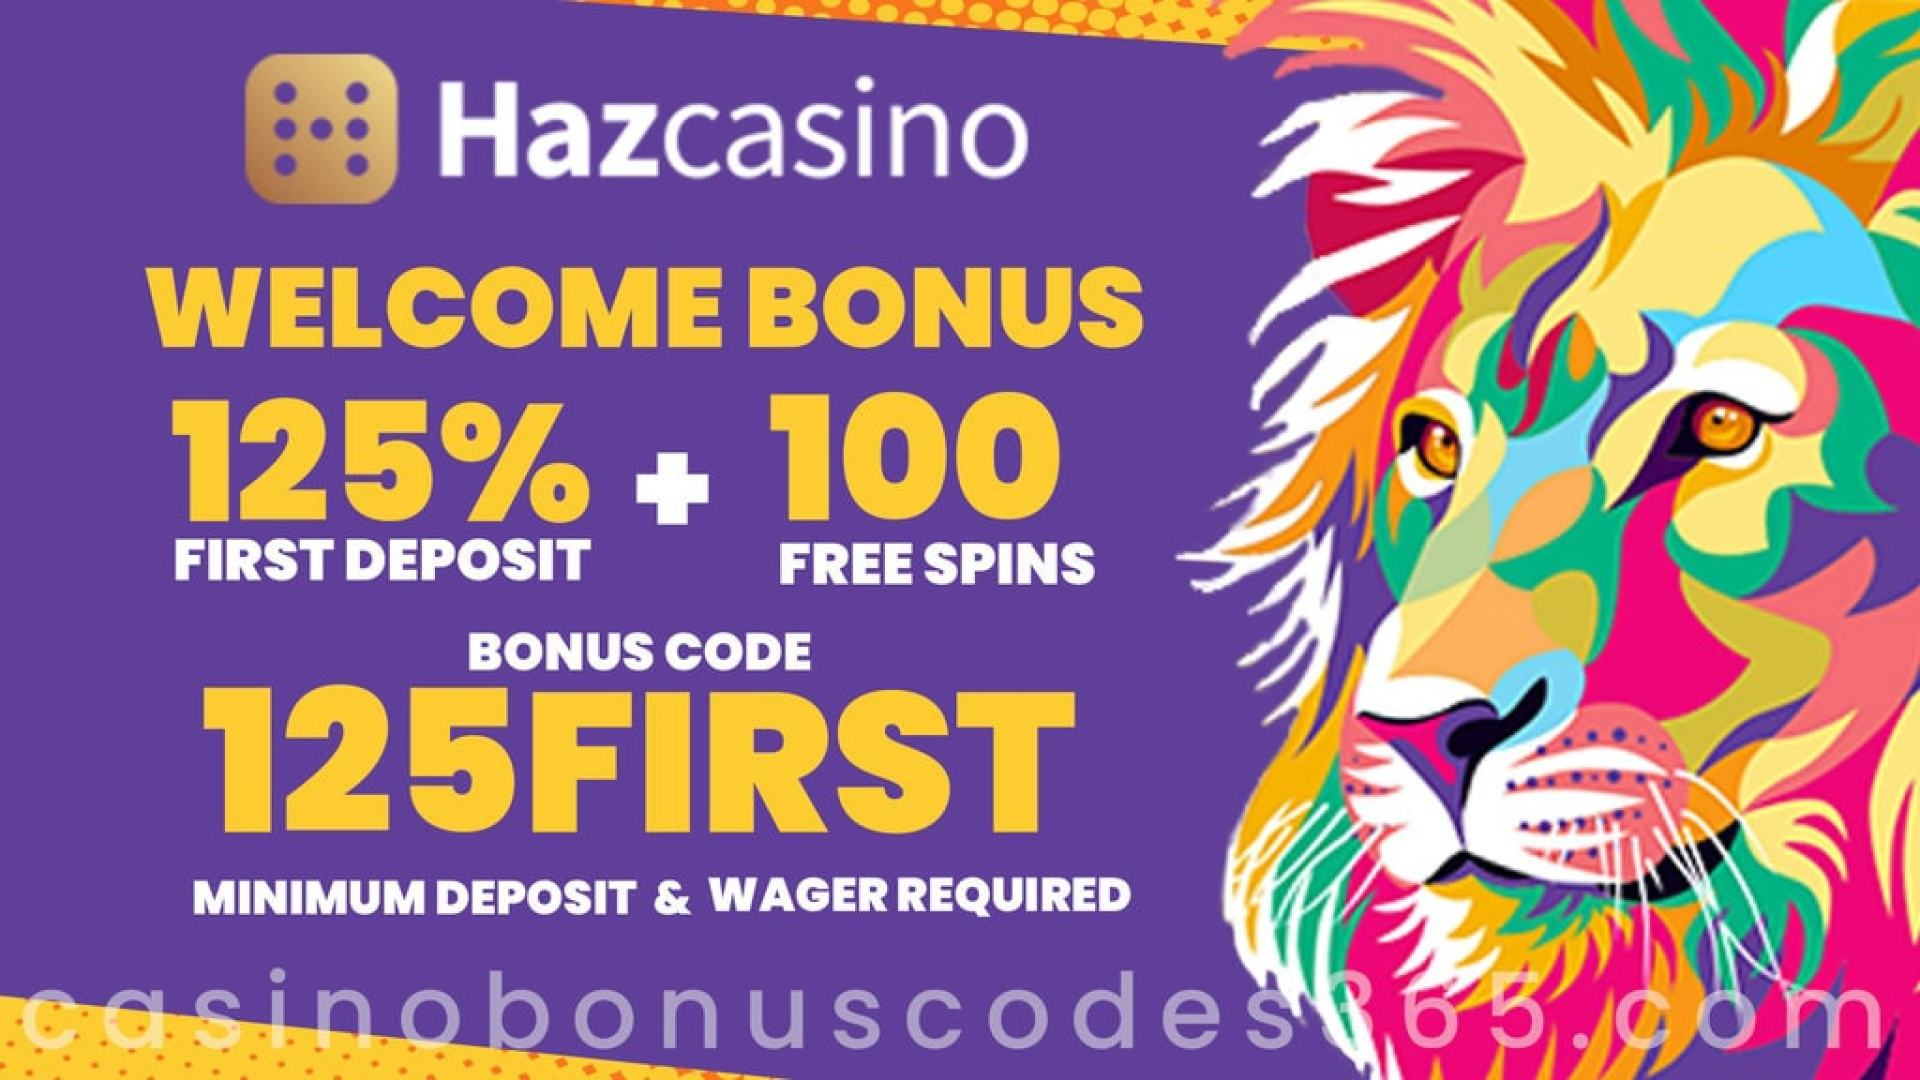 Haz Casino 125% Match plus 100 FREE Spins Welcome Deal